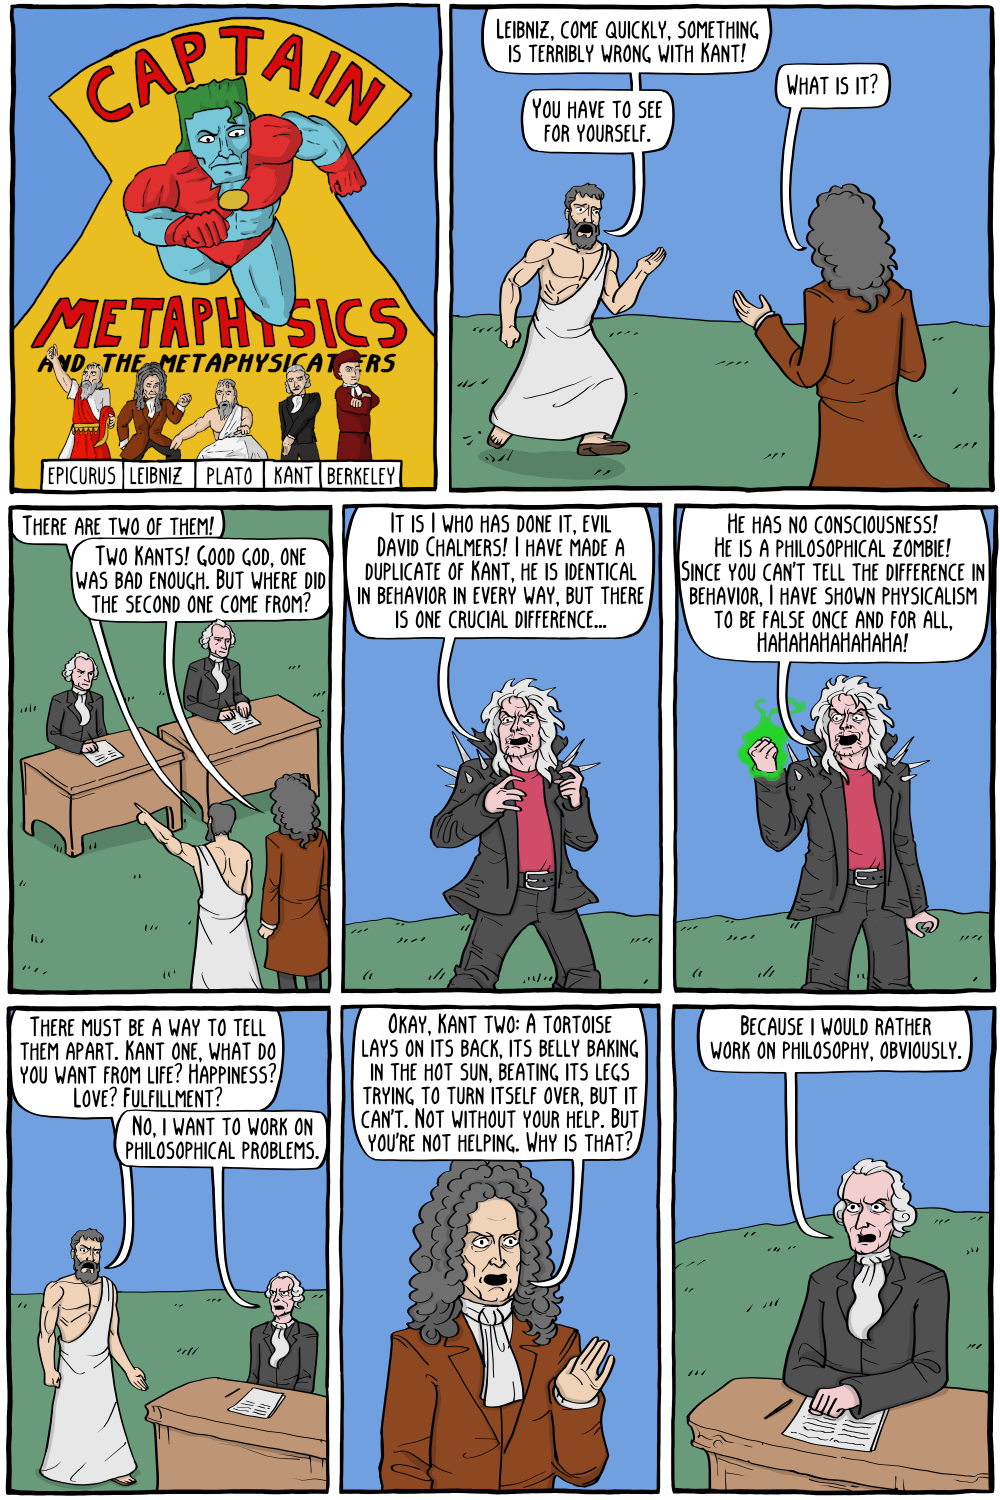 Captain Metaphysics and the Philosophical Zombie